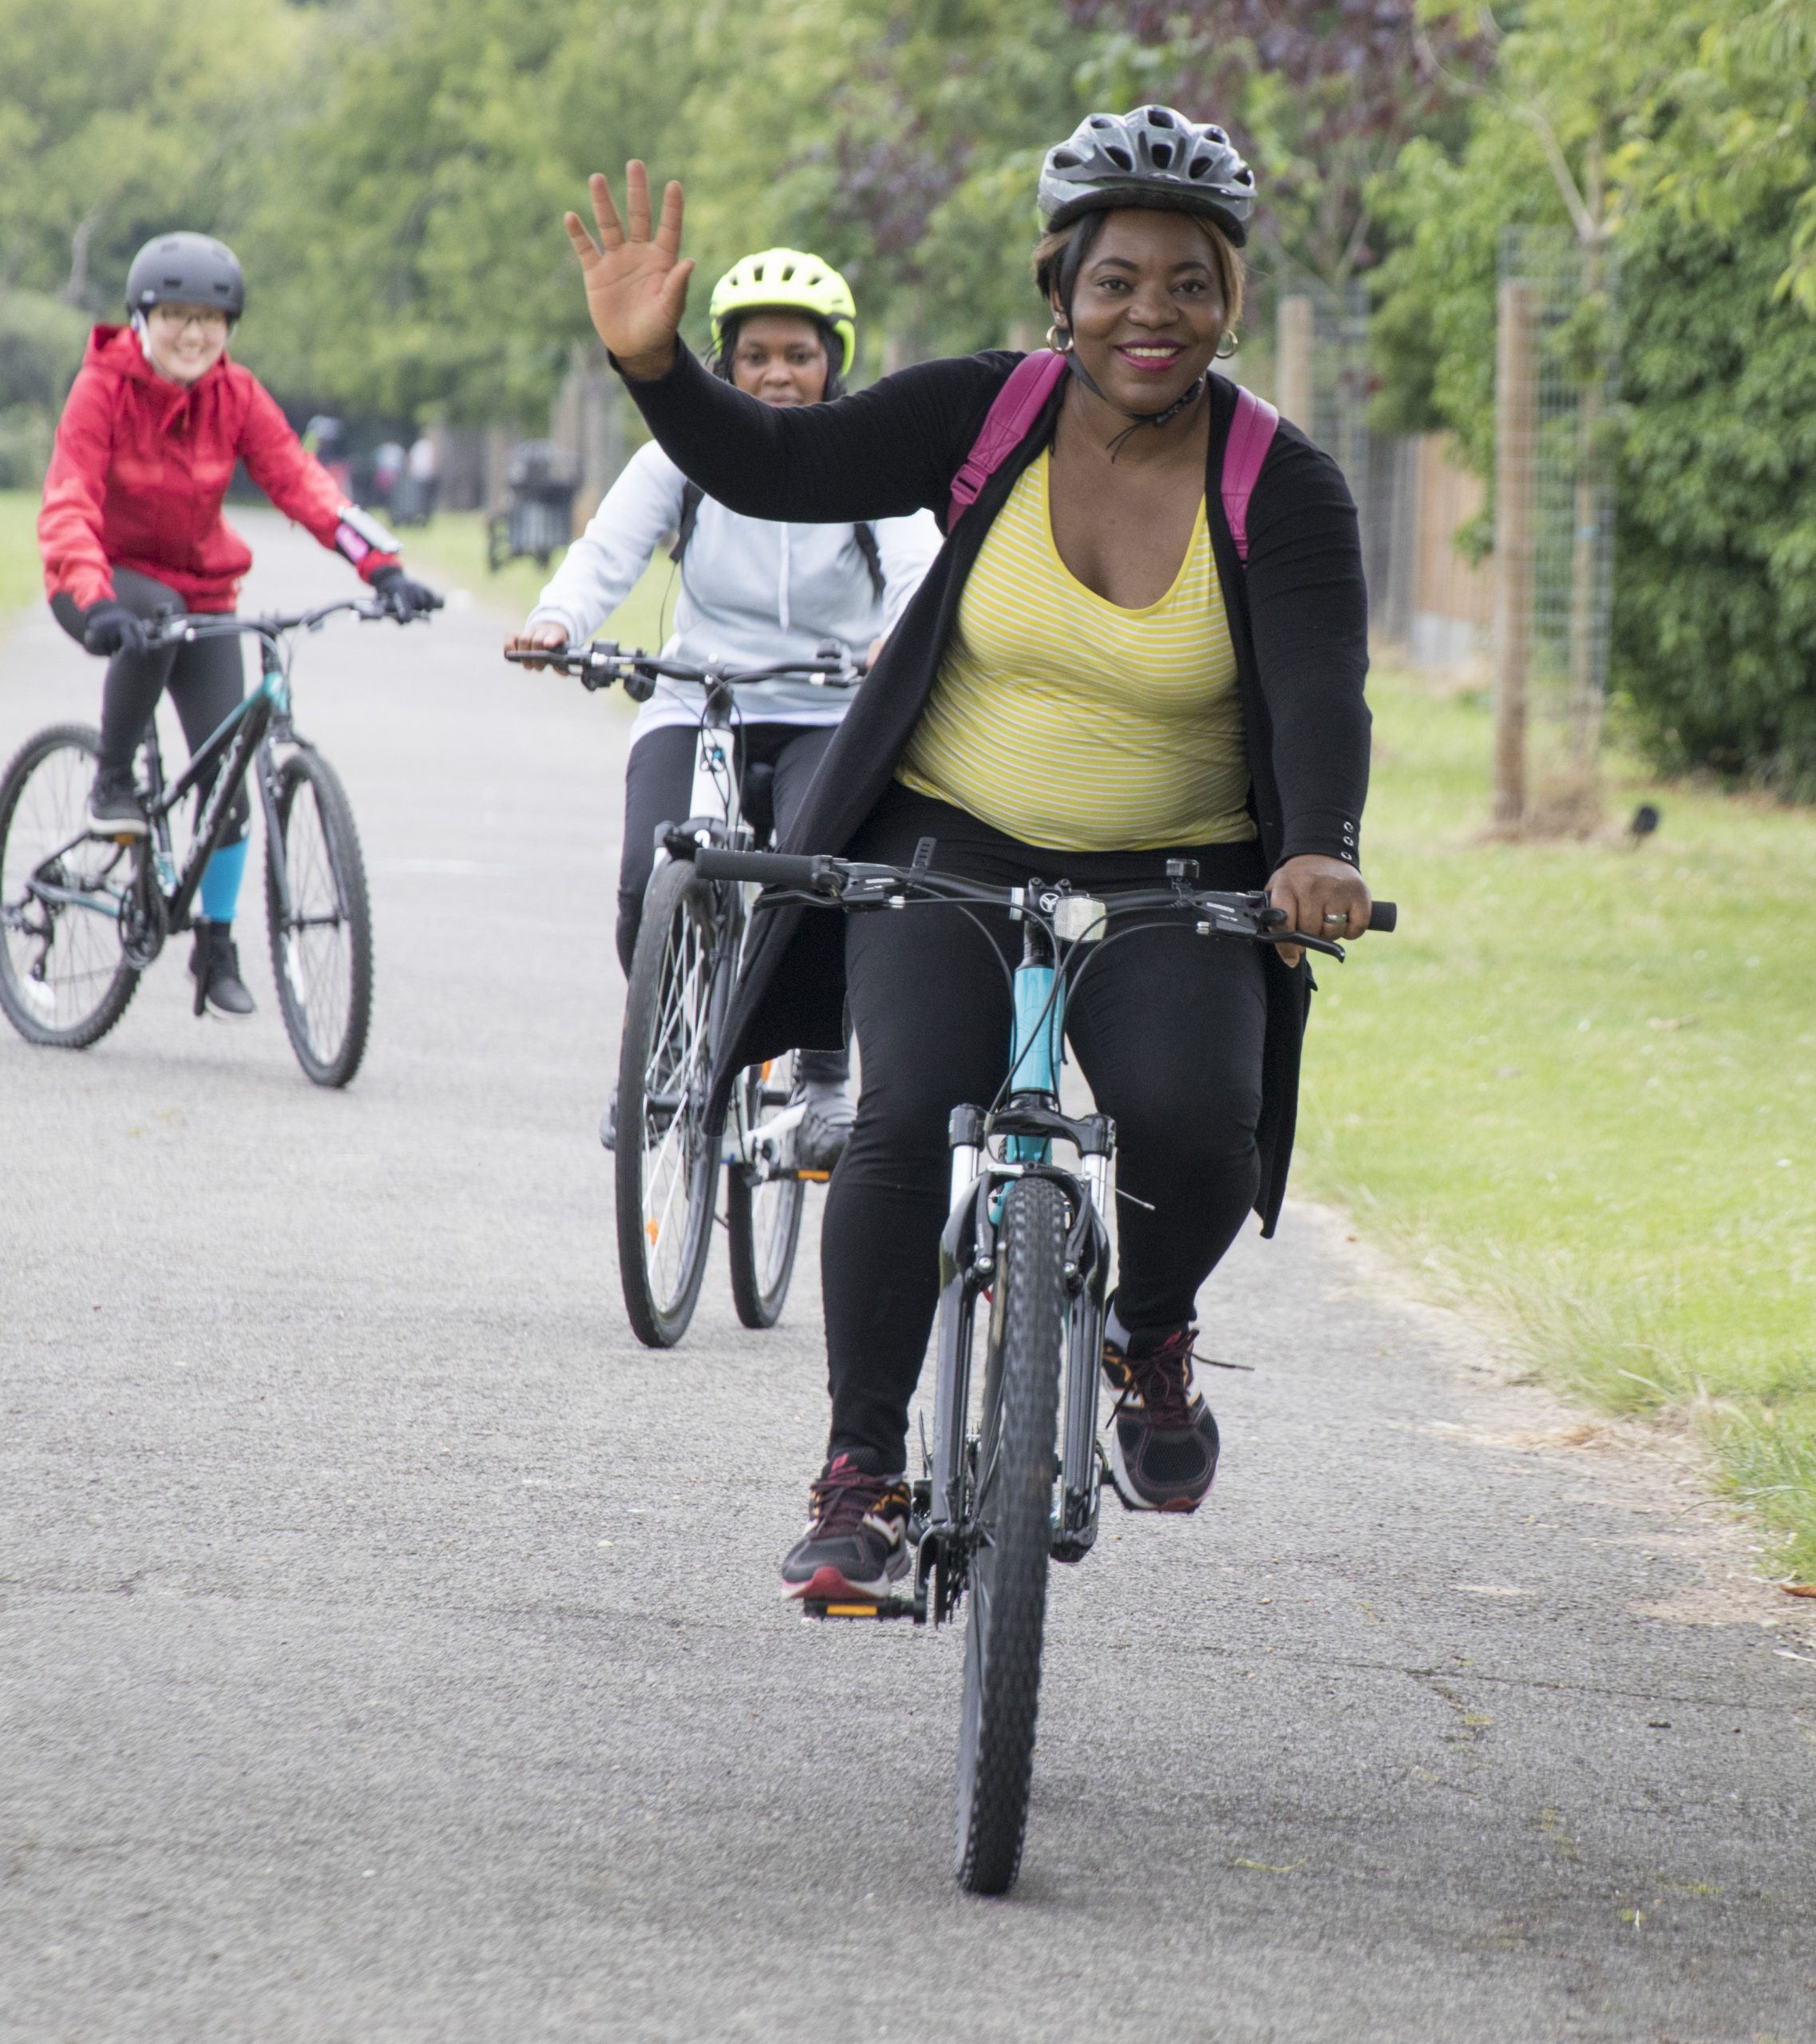 A woman waves at the camera whilst riding a bike